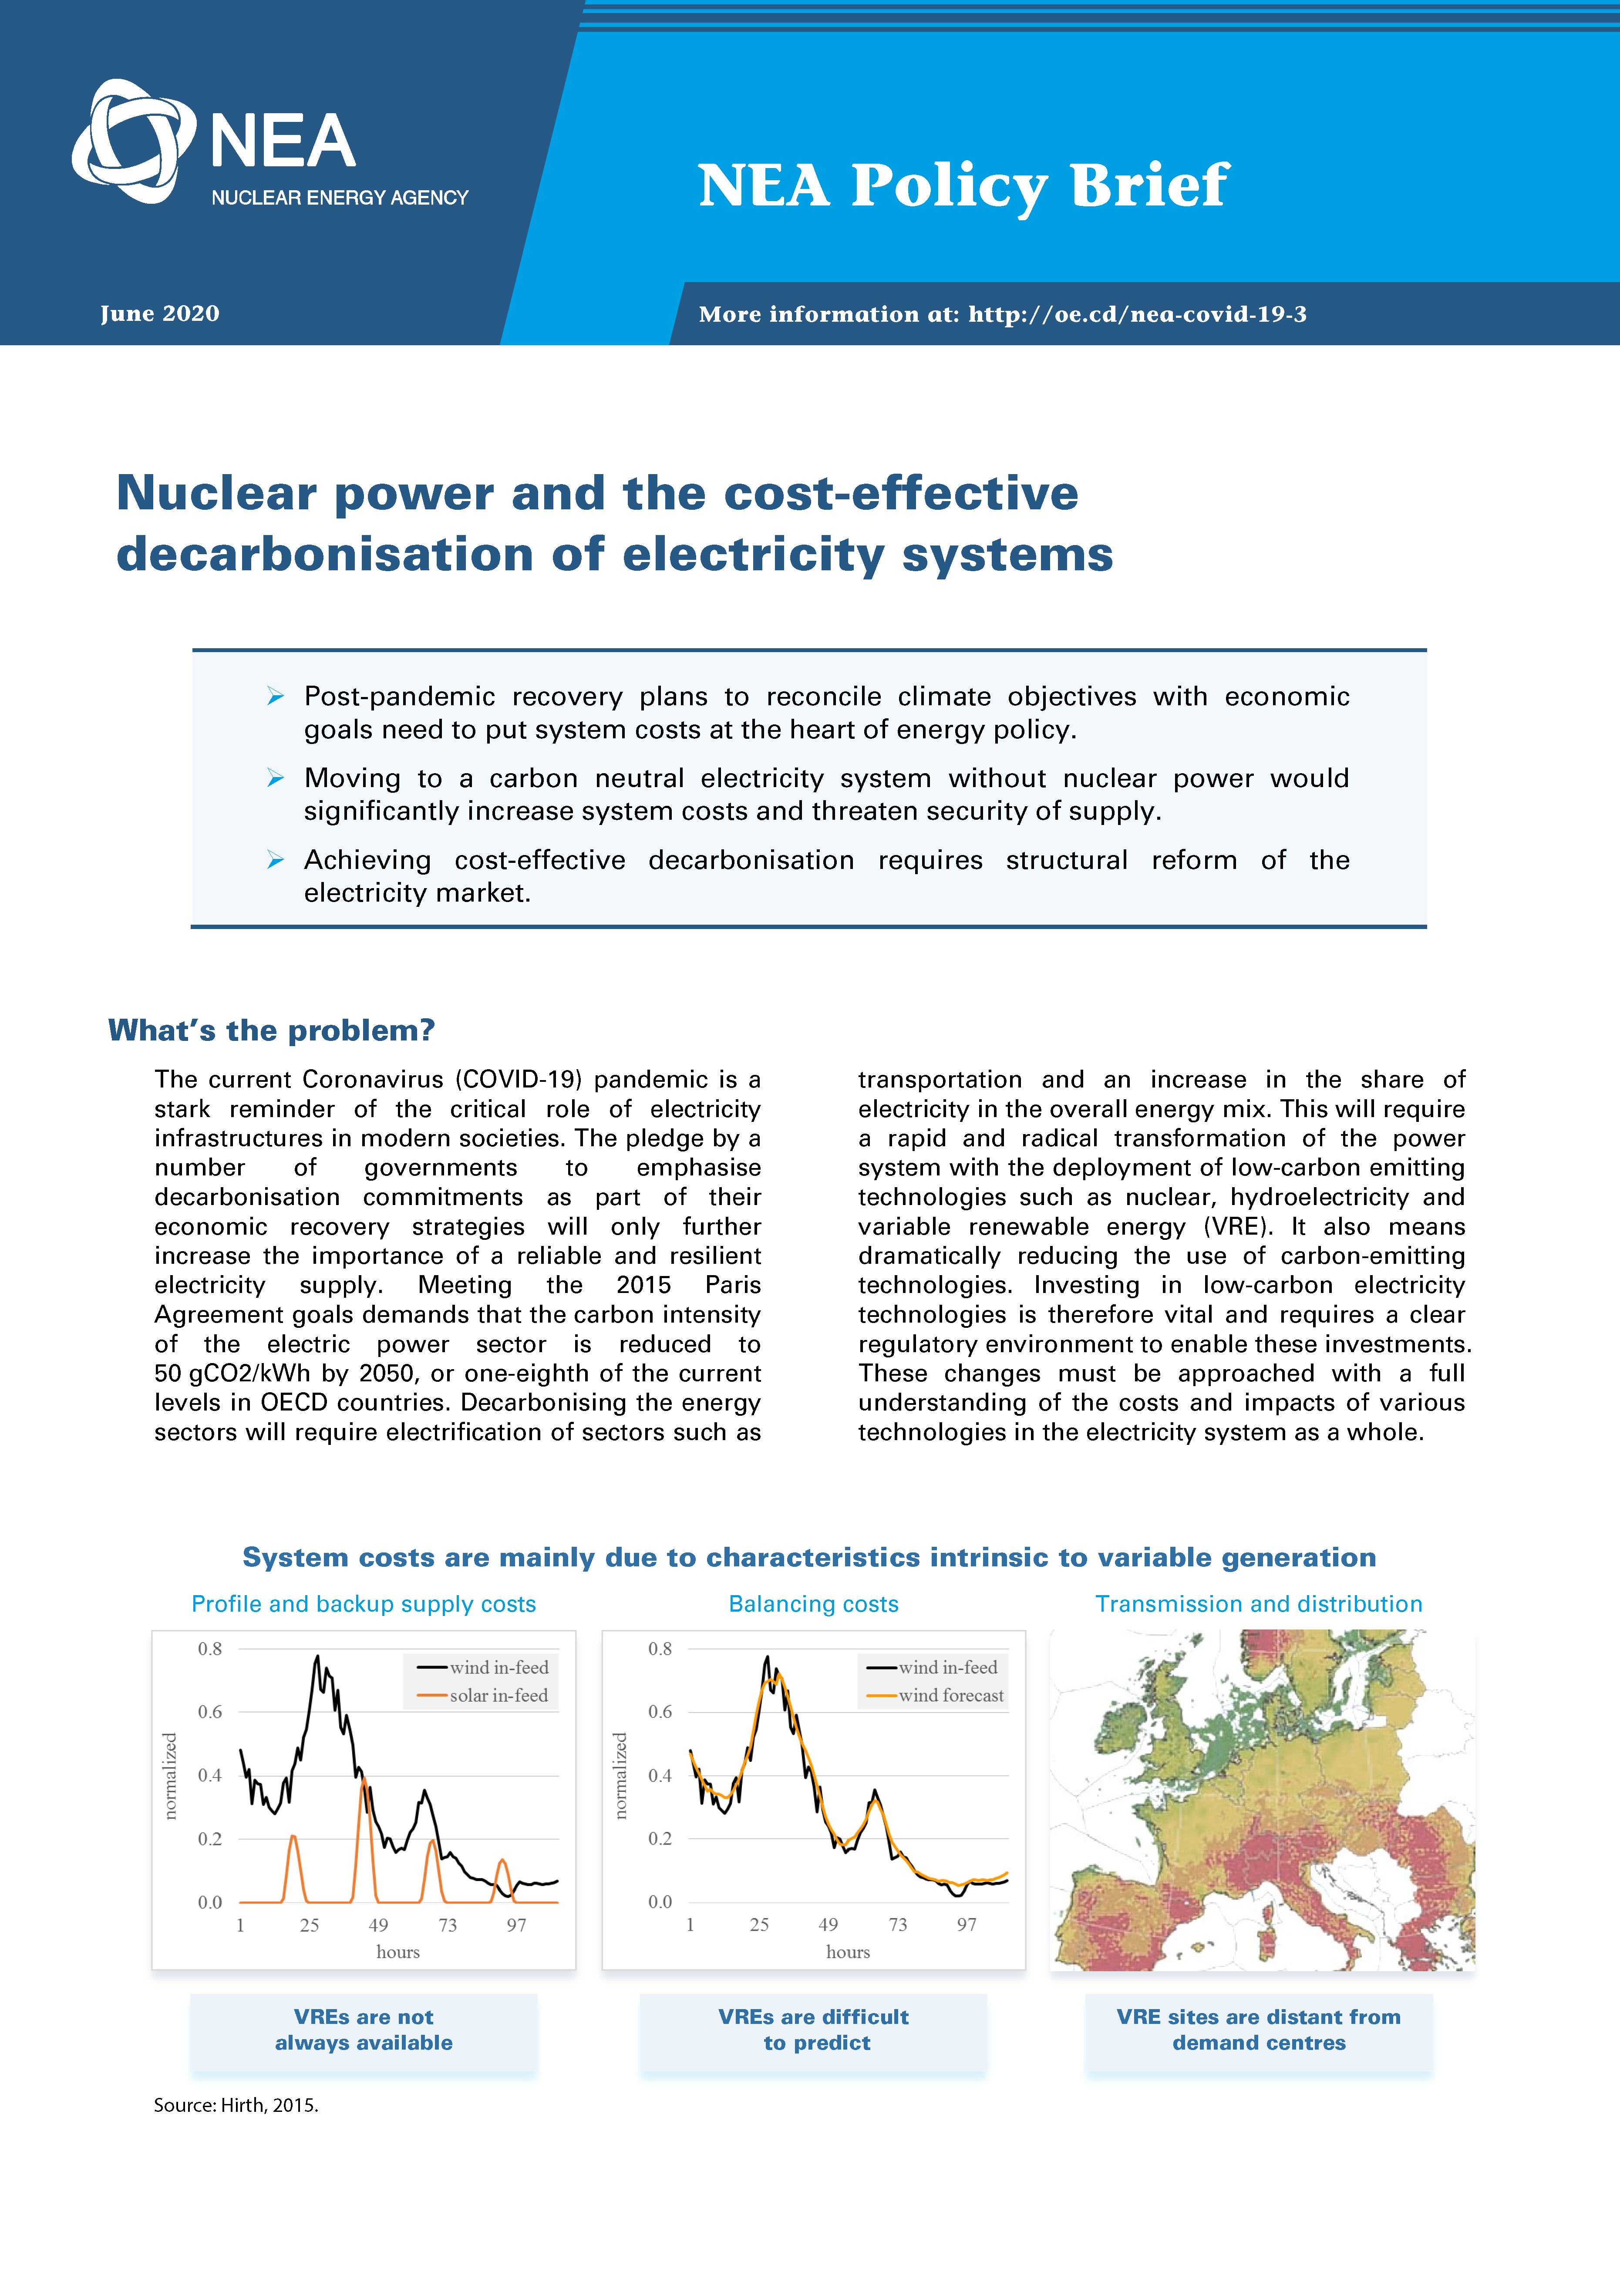 Nuclear power and the cost-effective